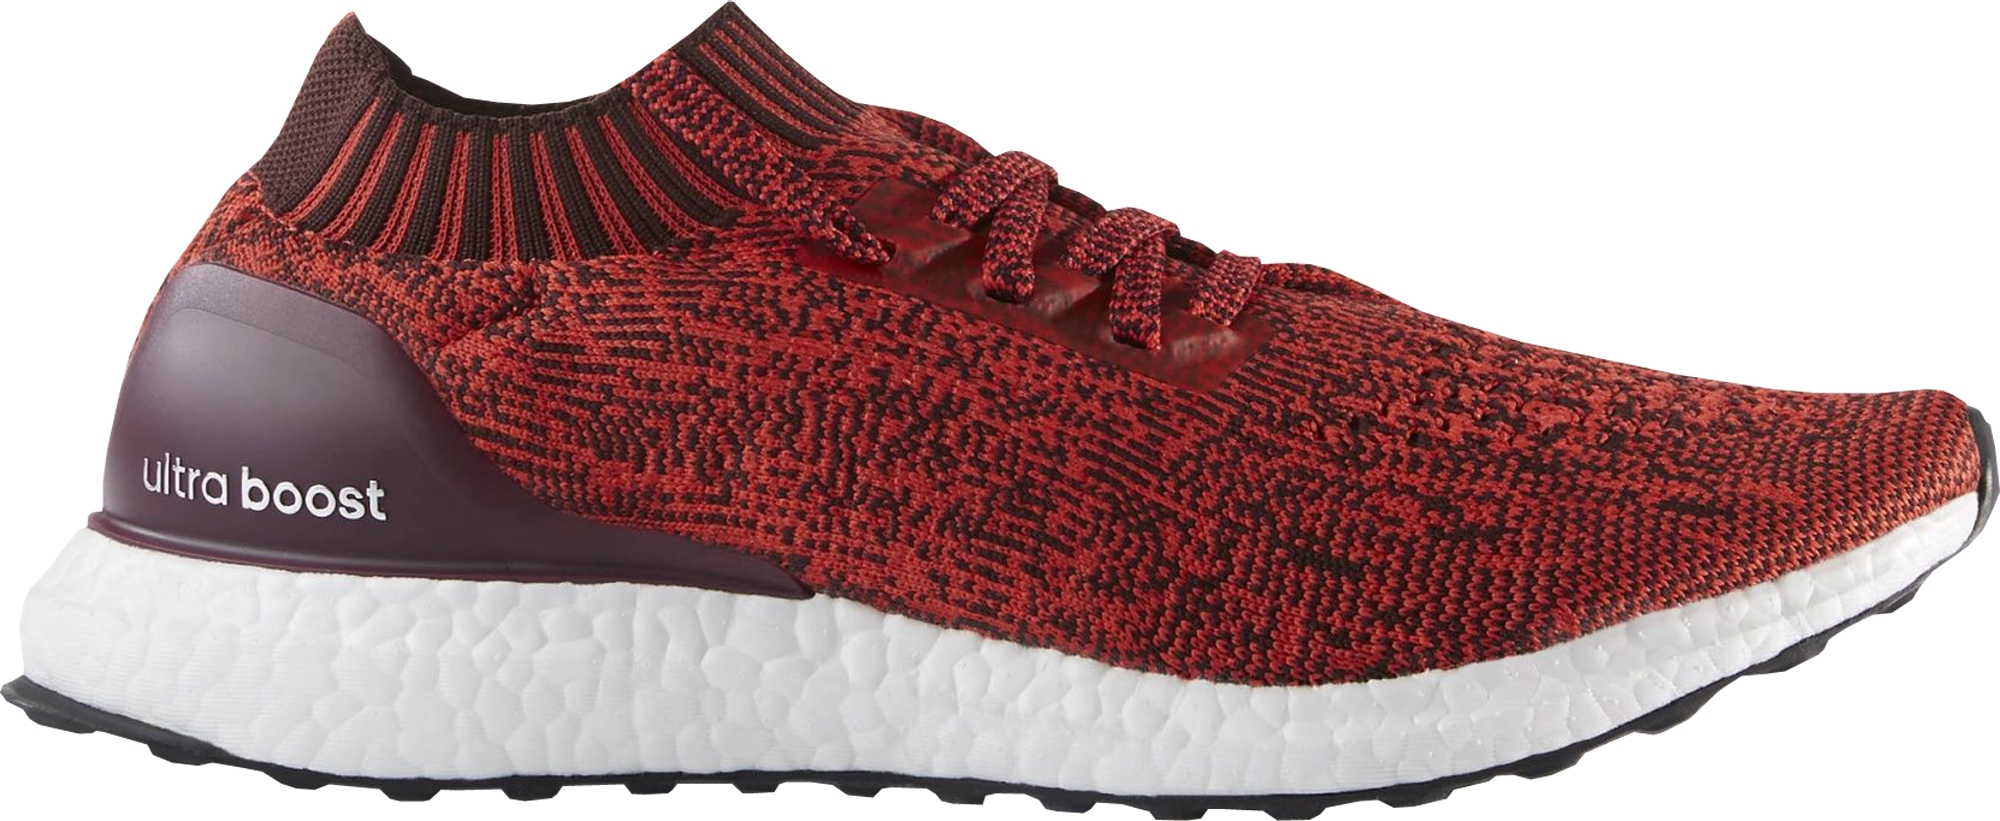 adidas Ultra Boost Uncaged Tactile Red Dark Burgundy